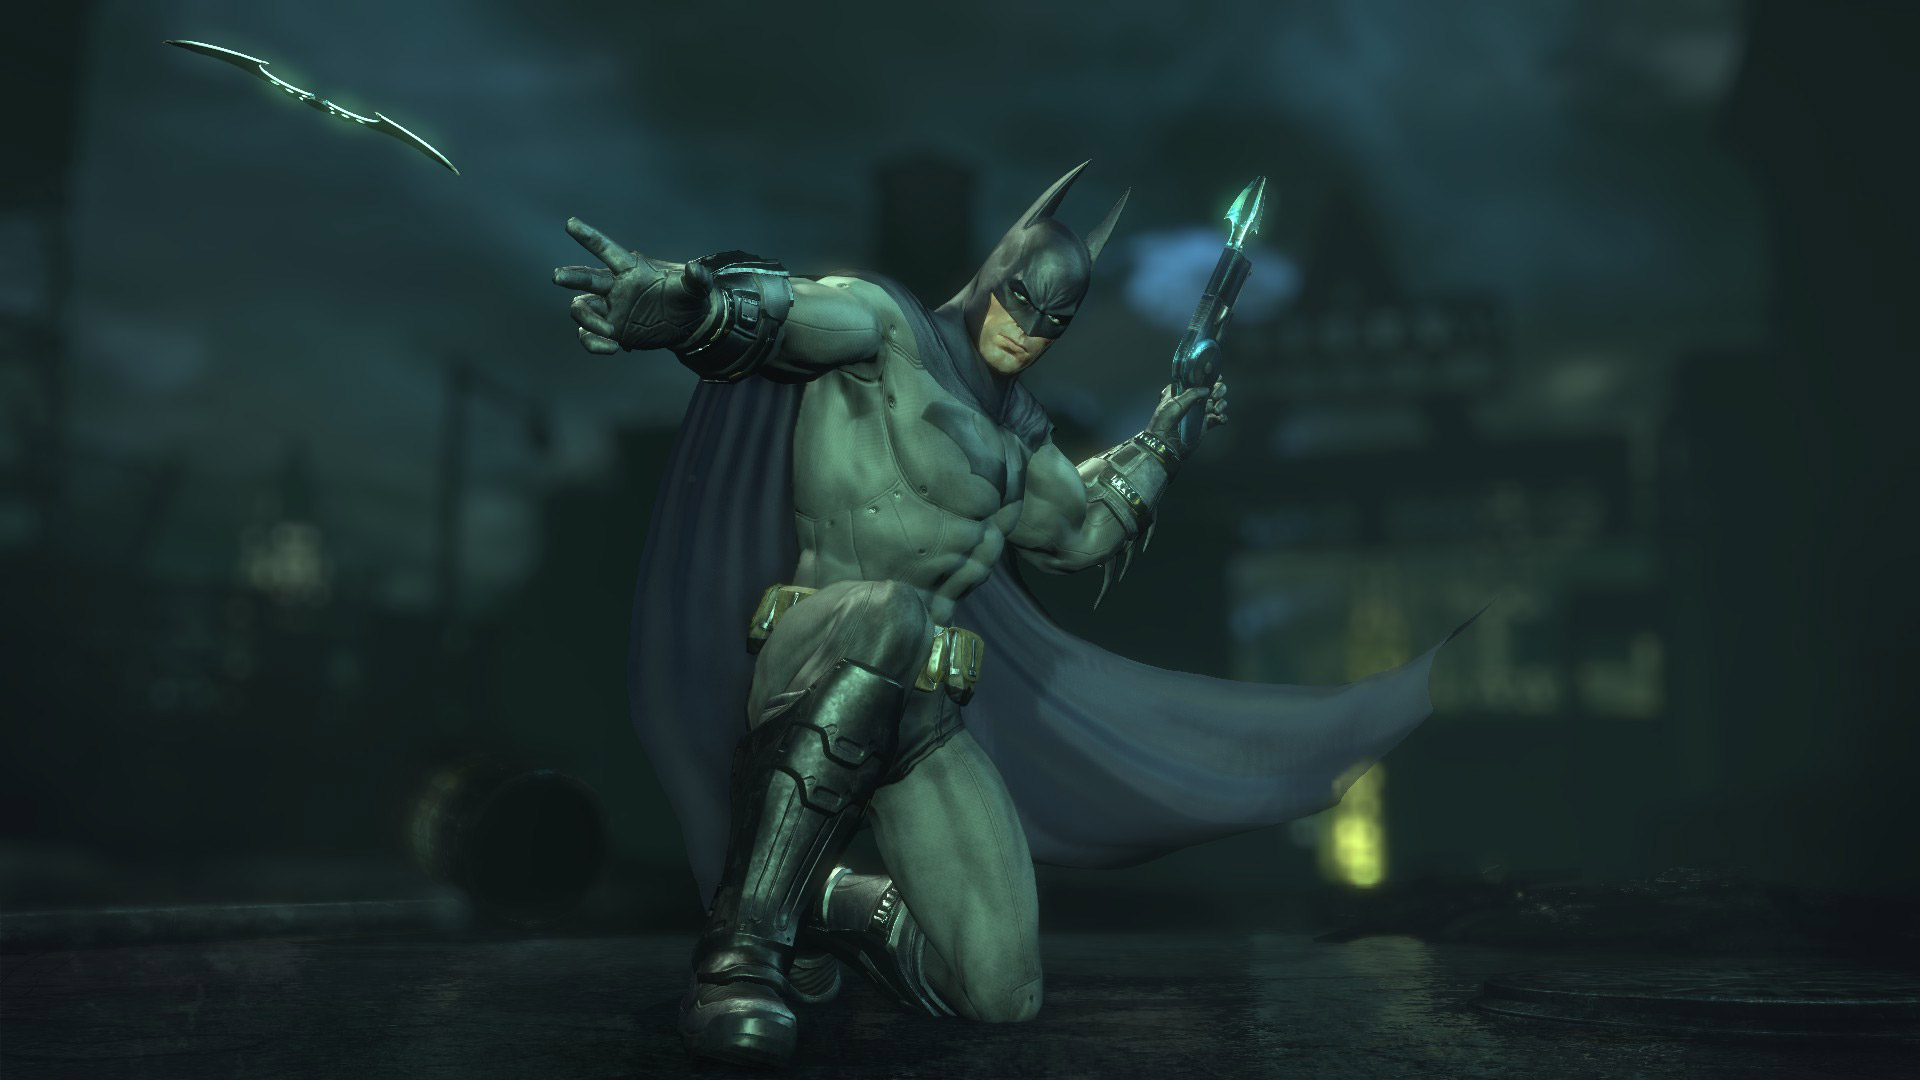 Batman Arkham City Wallpaper in 1920x1080 1920x1080